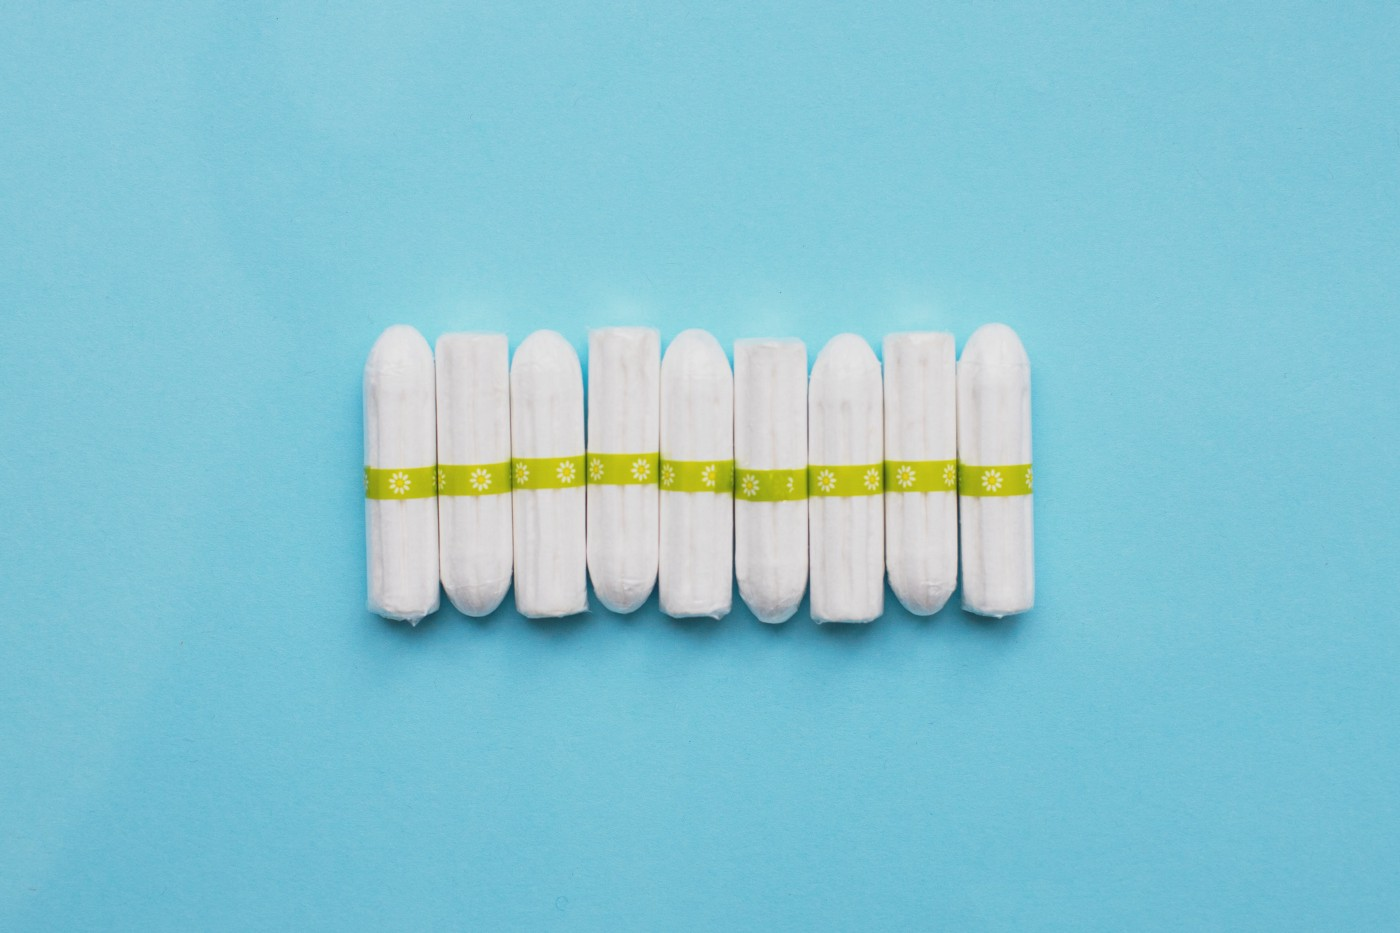 Nine tampons are lined up next to each other horizontally on a plain blue background.